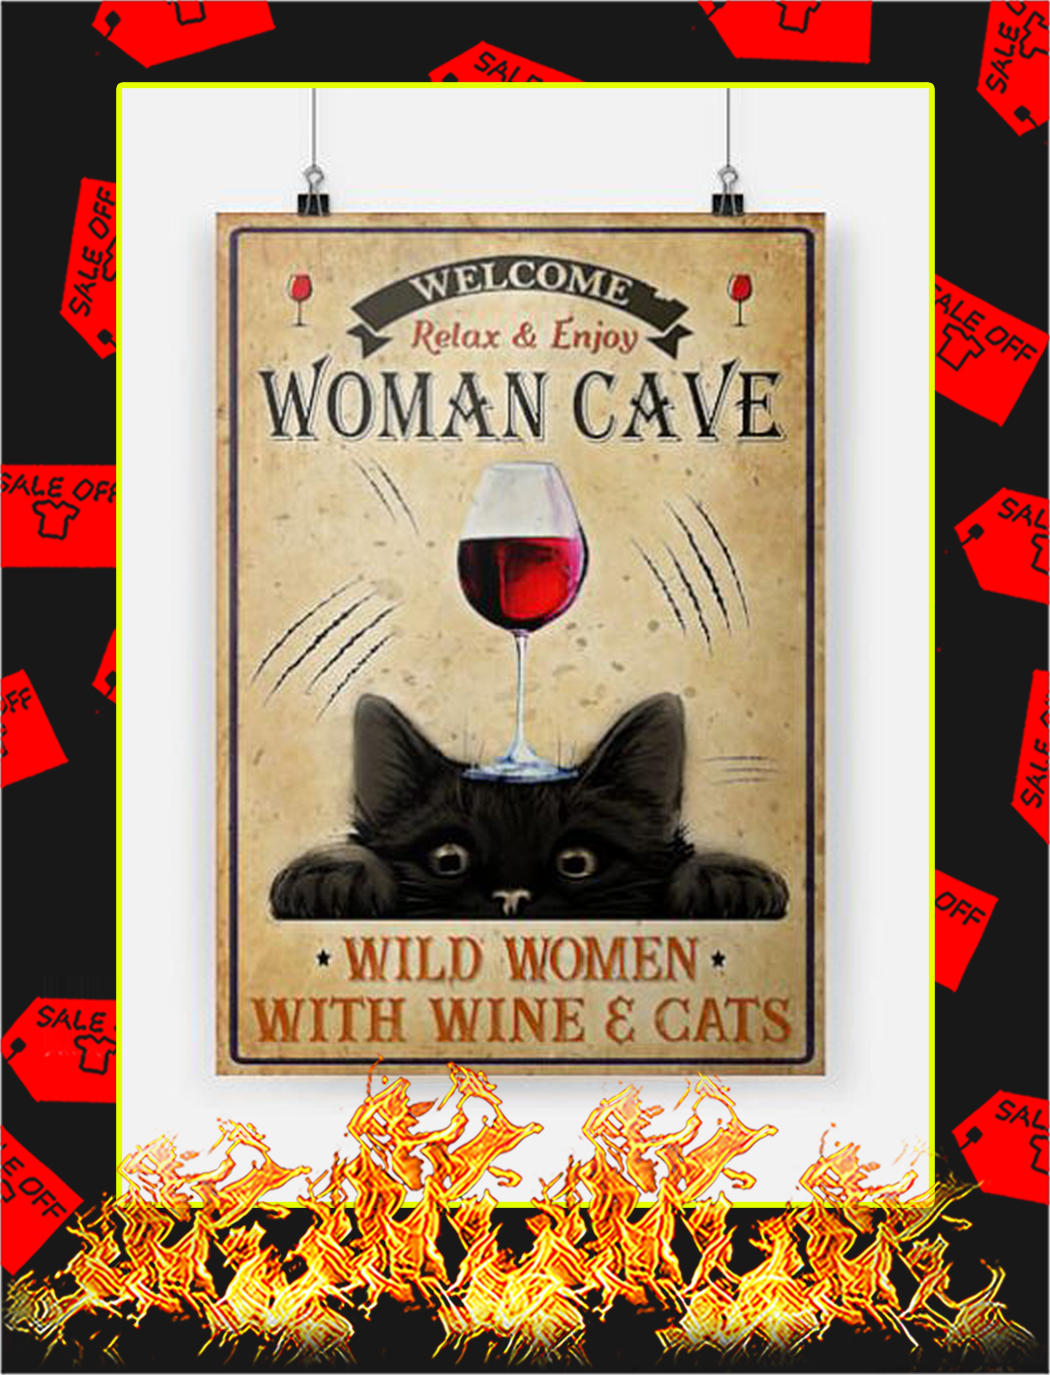 Wine and cats welcome relax and enjoy woman cave poster - A1